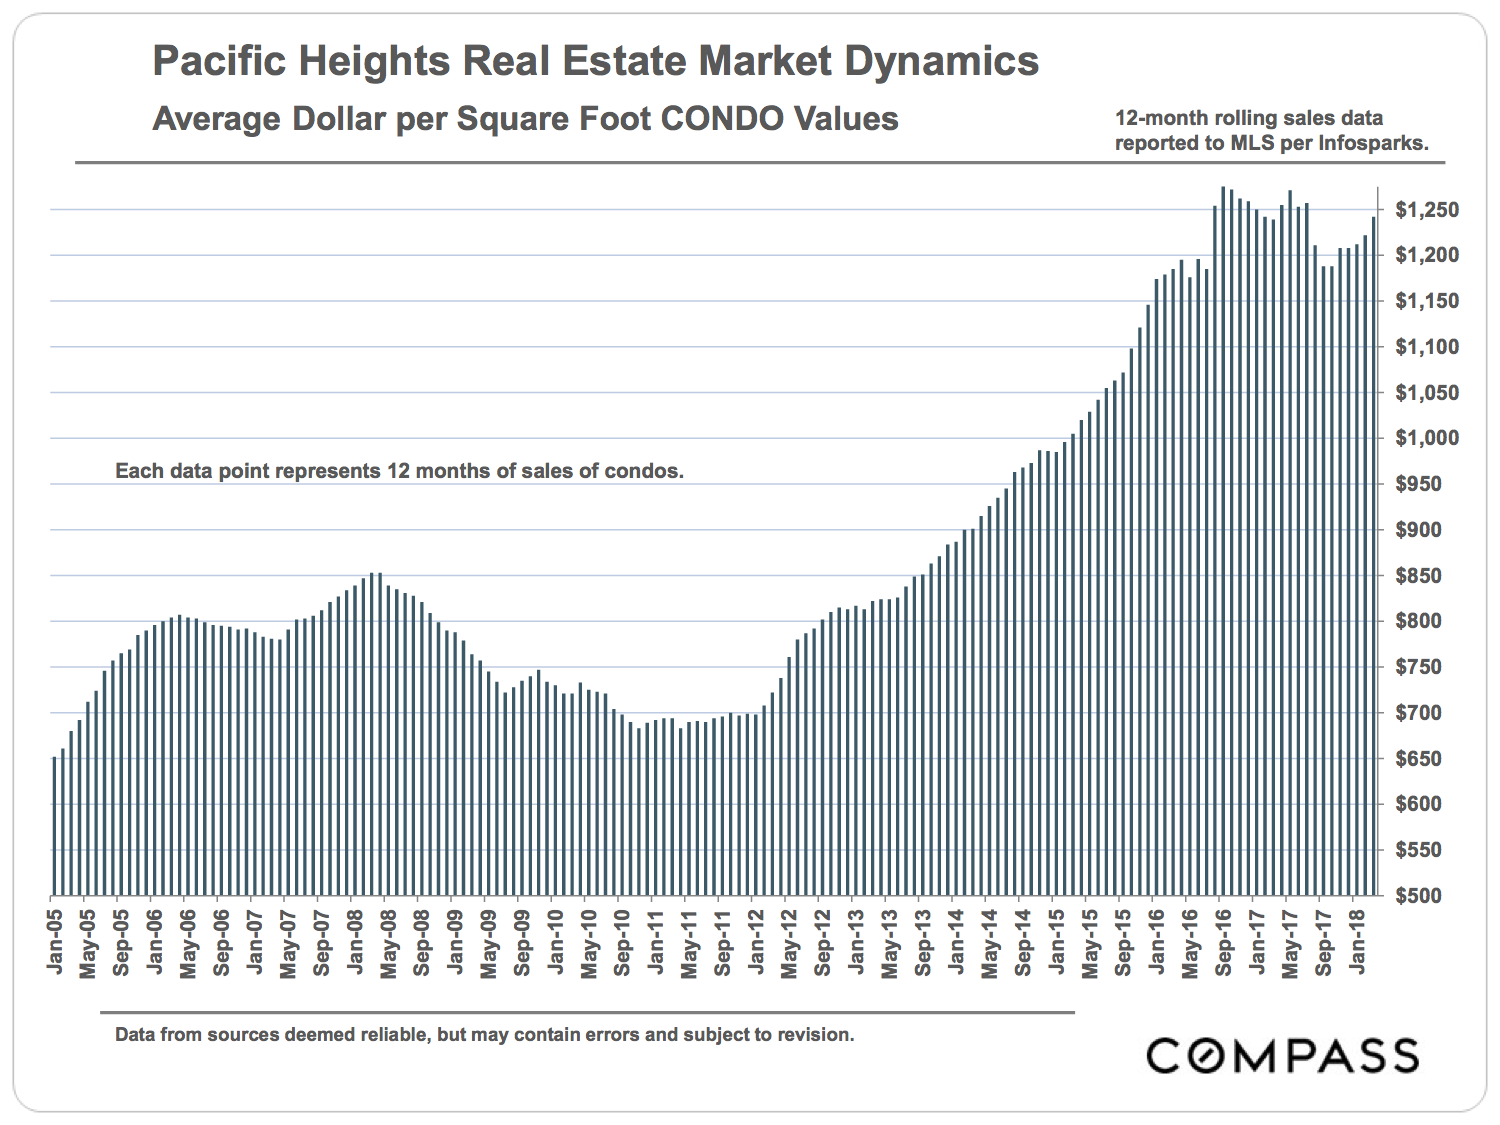 Pacific Heights Condo Average Dollar Per Square Foot